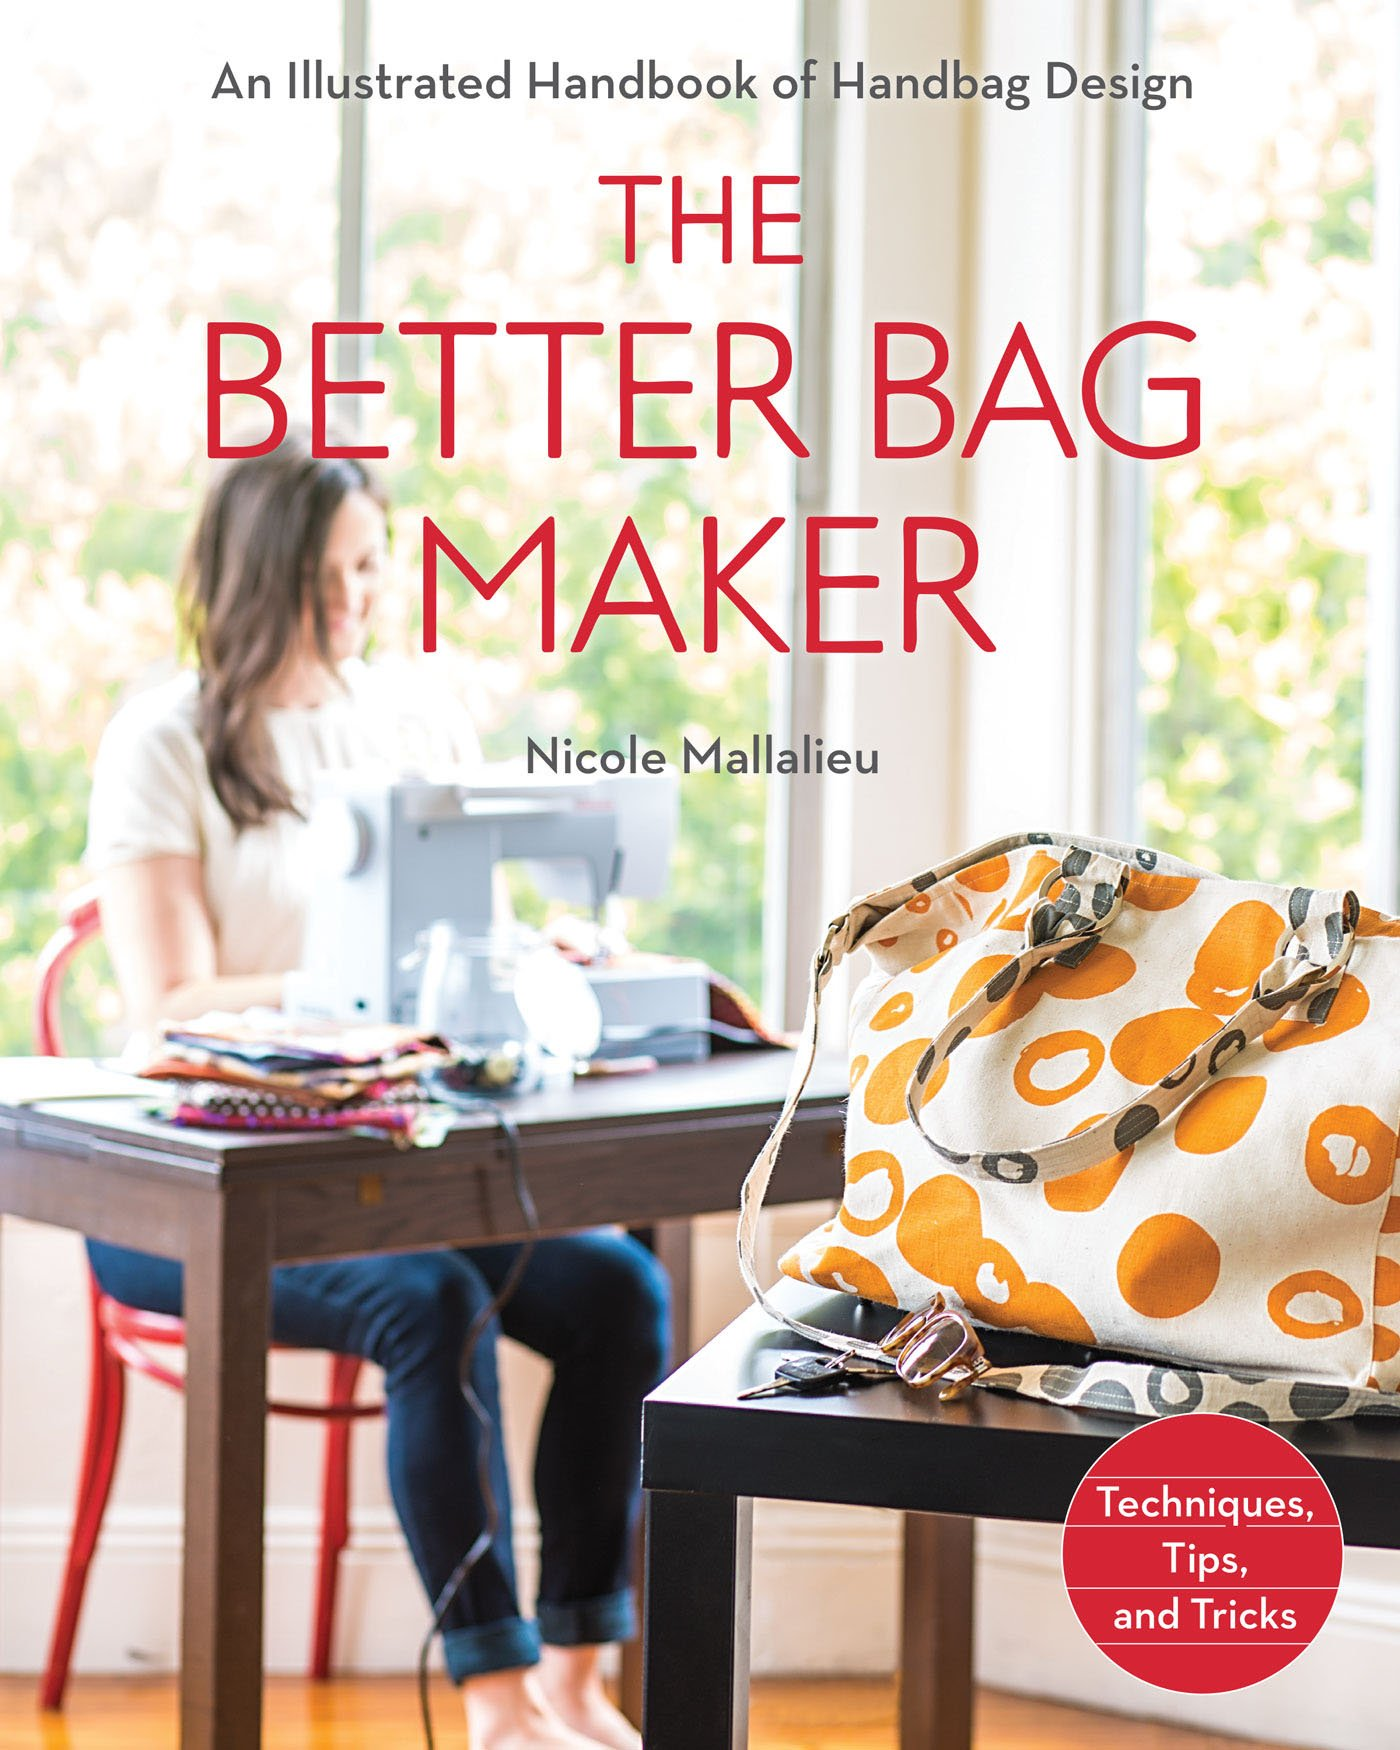 Better Bag Maker Illustrated Techniques product image